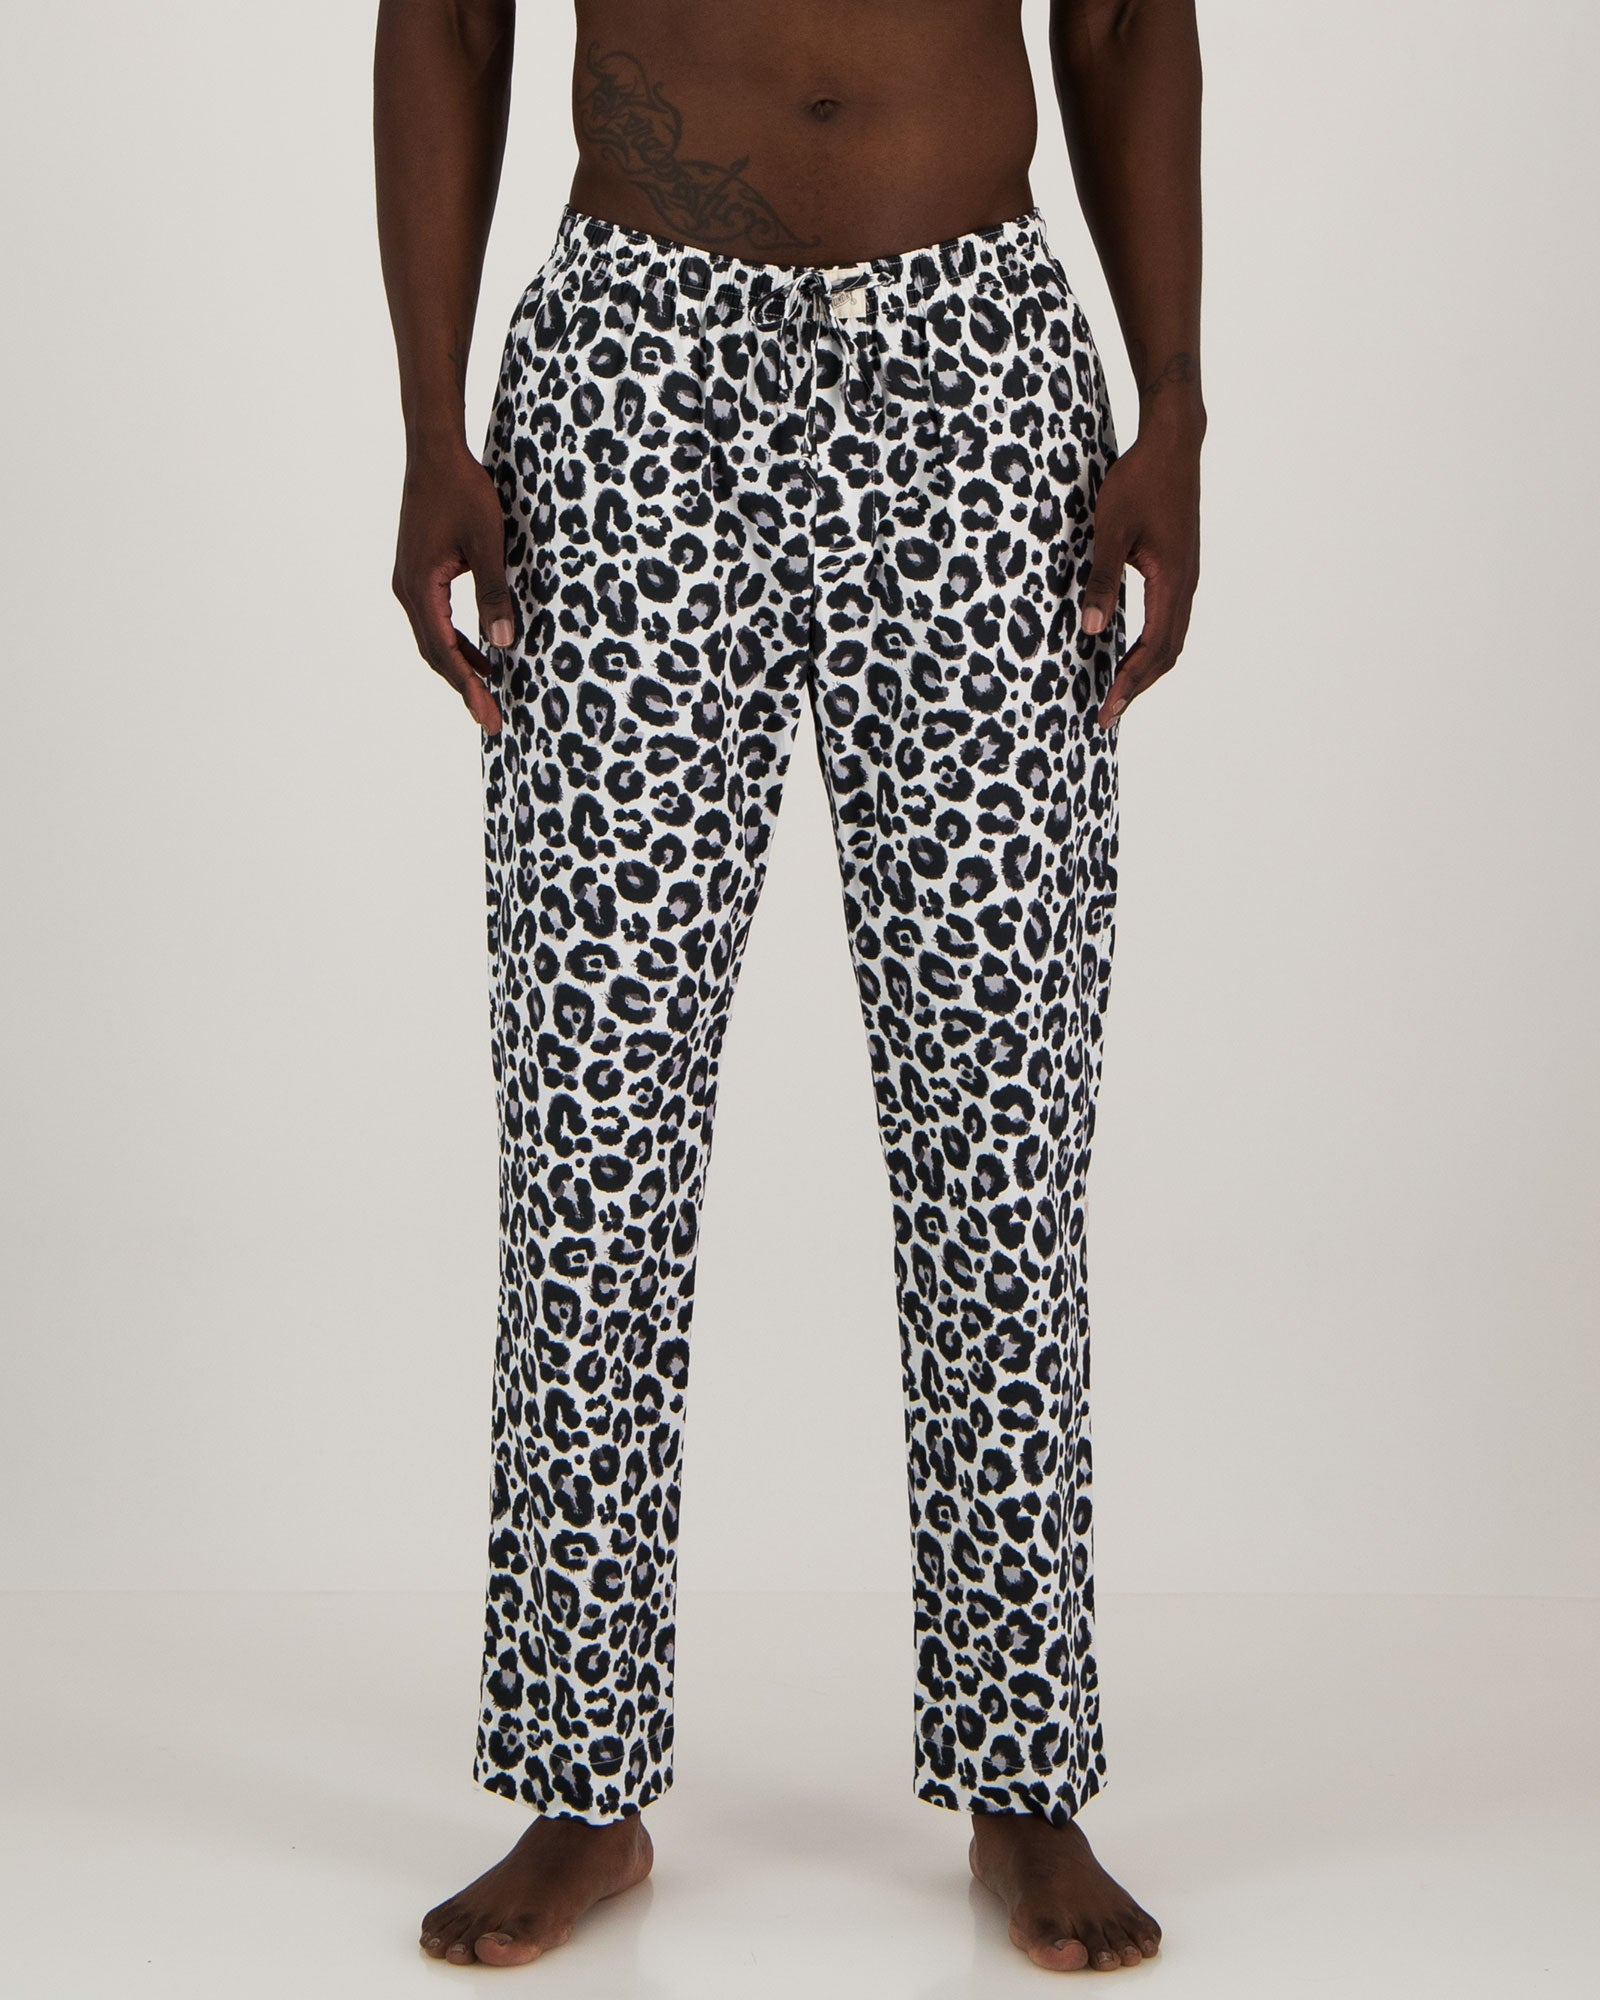 Mens Lounge Pants - Leopard Skin (White)